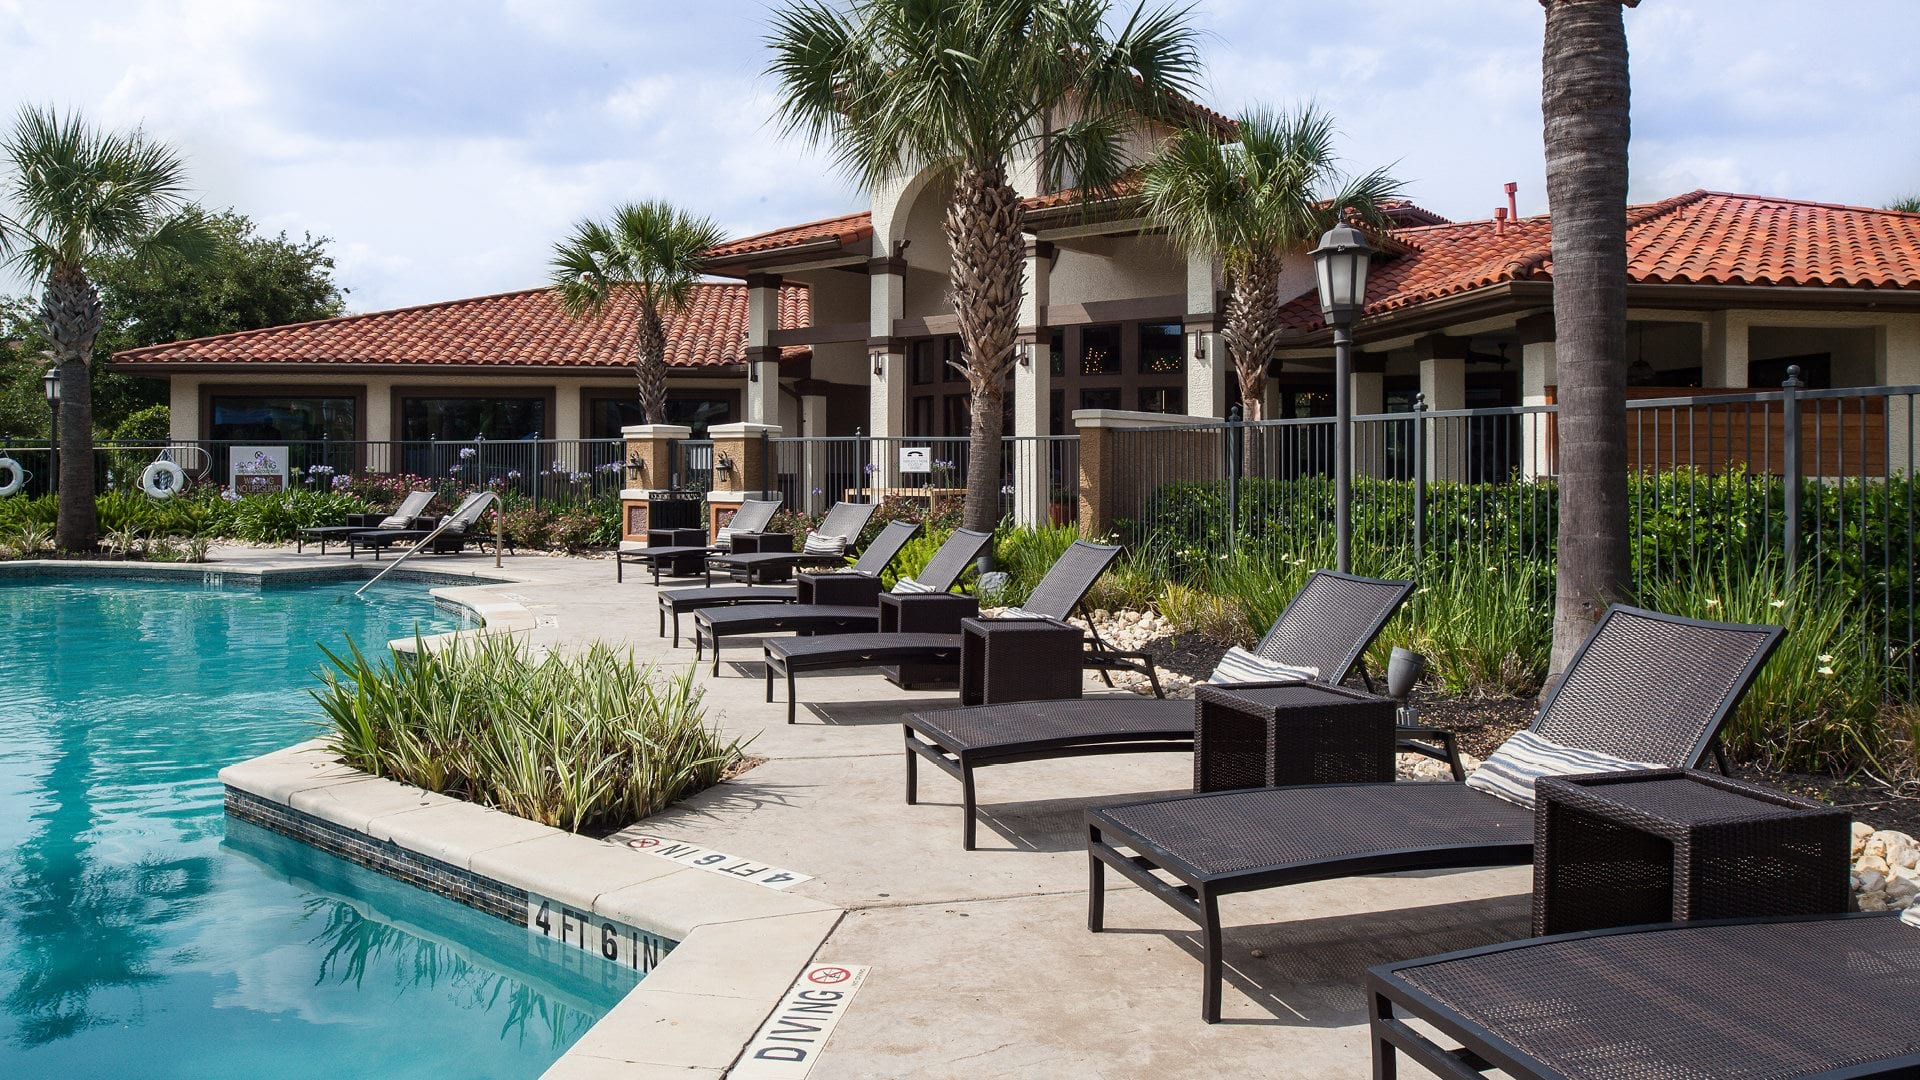 Lounge chairs by resort style pool at Cortland Coppery Springs